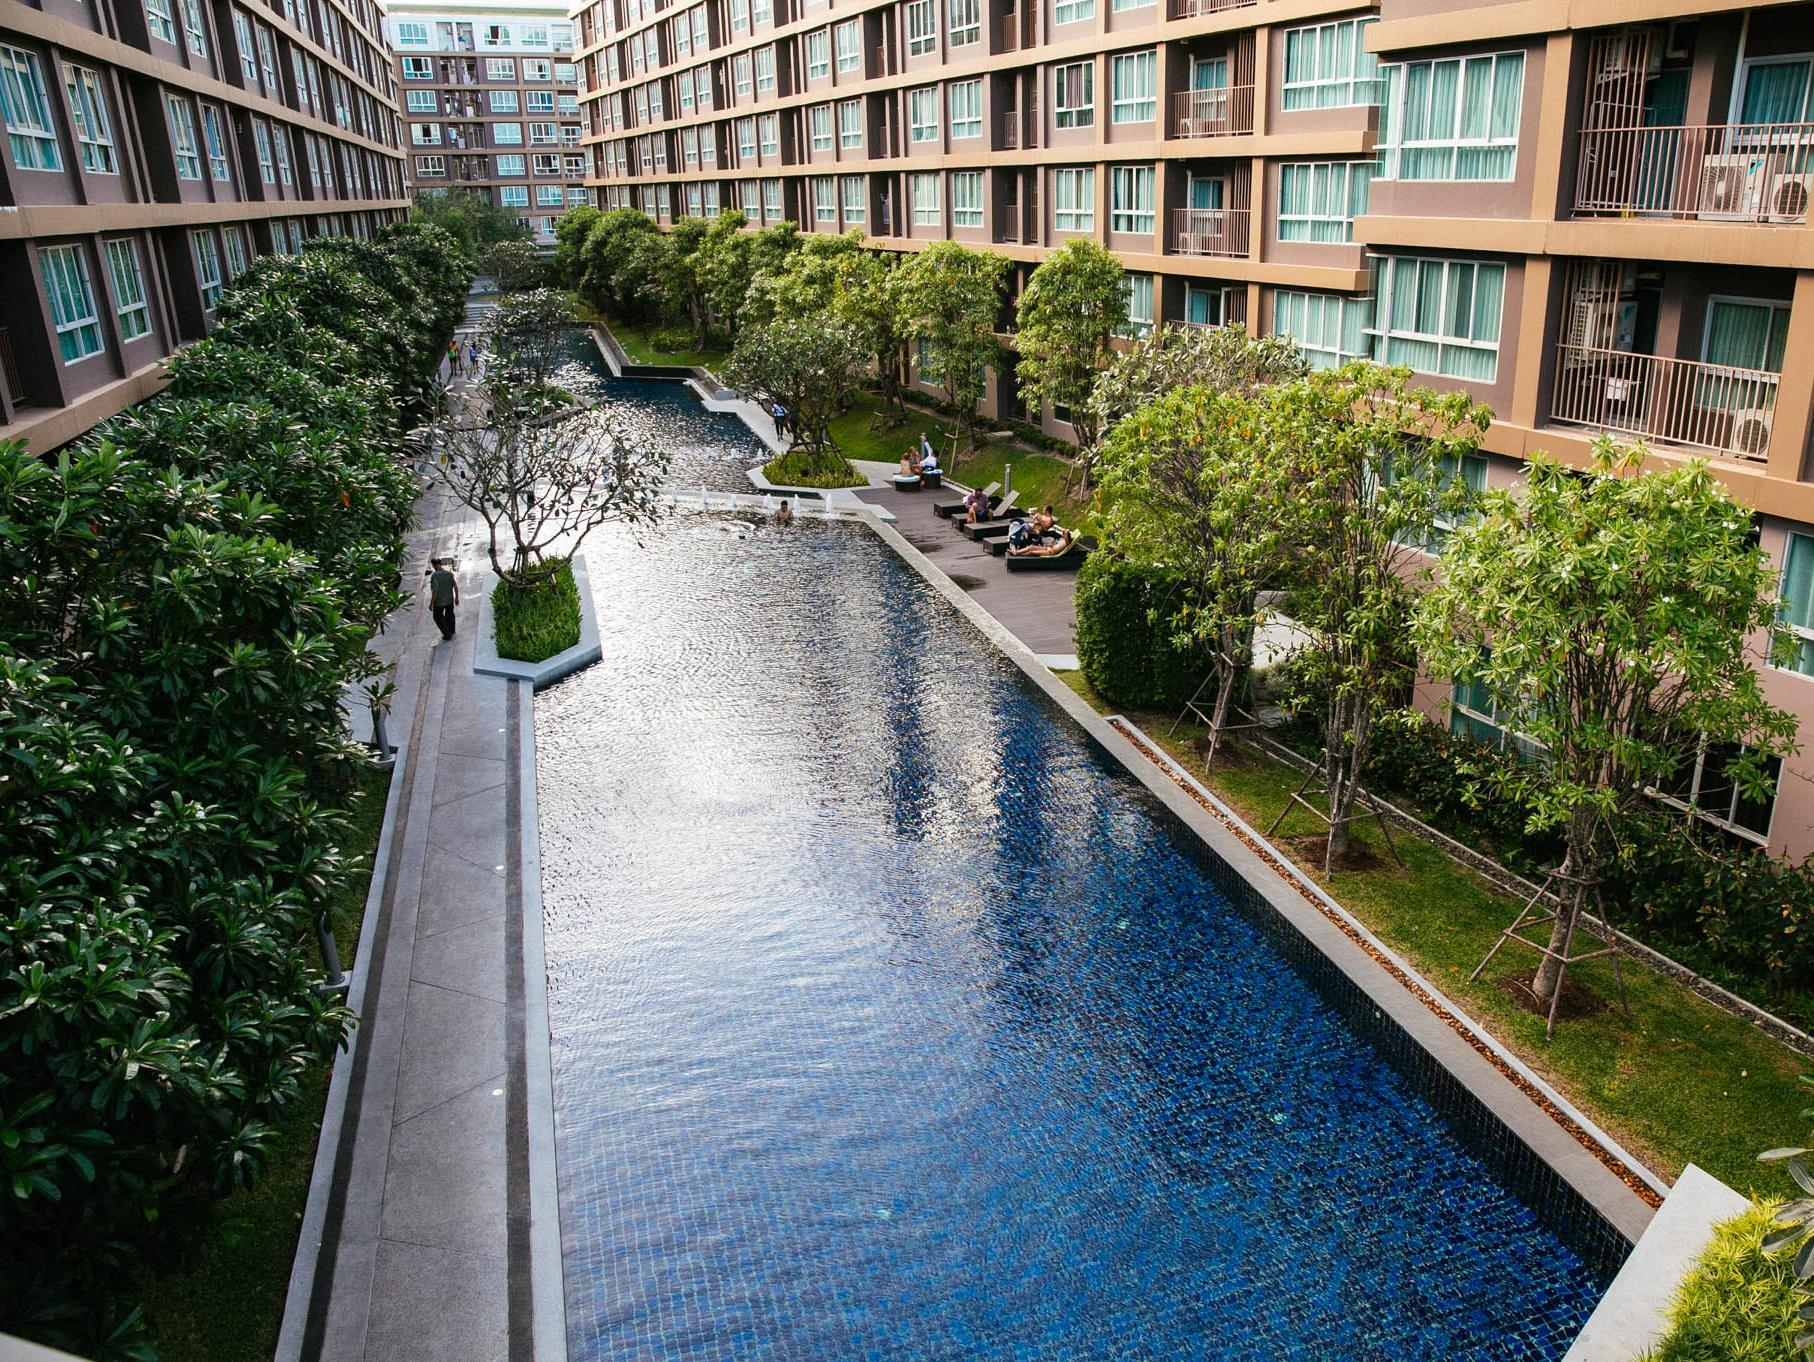 D Condo Creek 8 FL - Hotels and Accommodation in Thailand, Asia